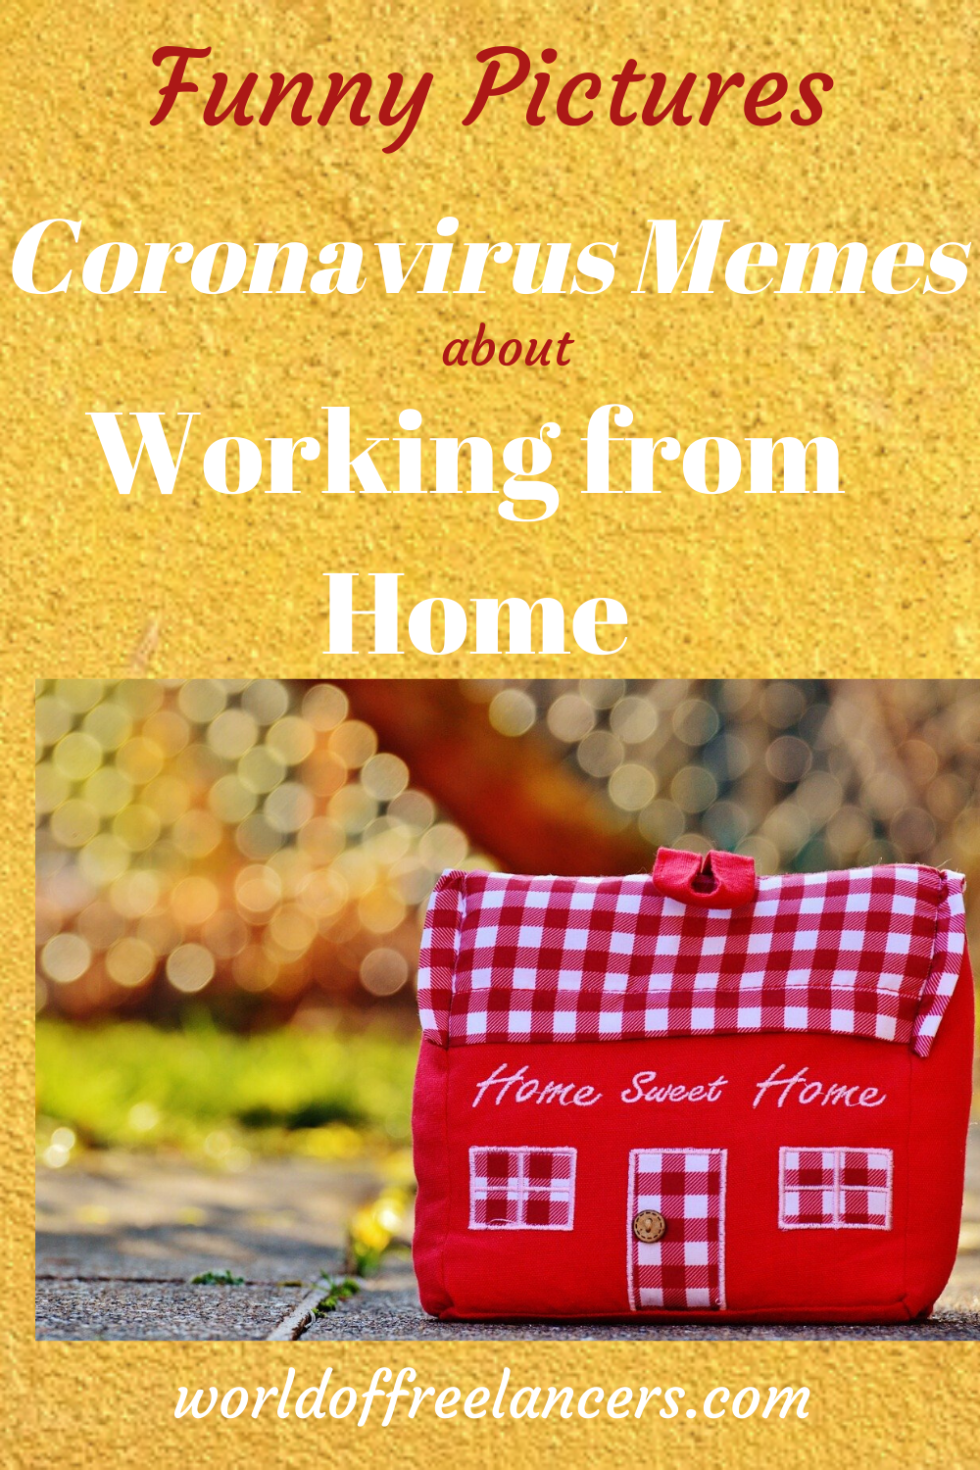 Funny pictures - Coronavirus Memes about Working from Home